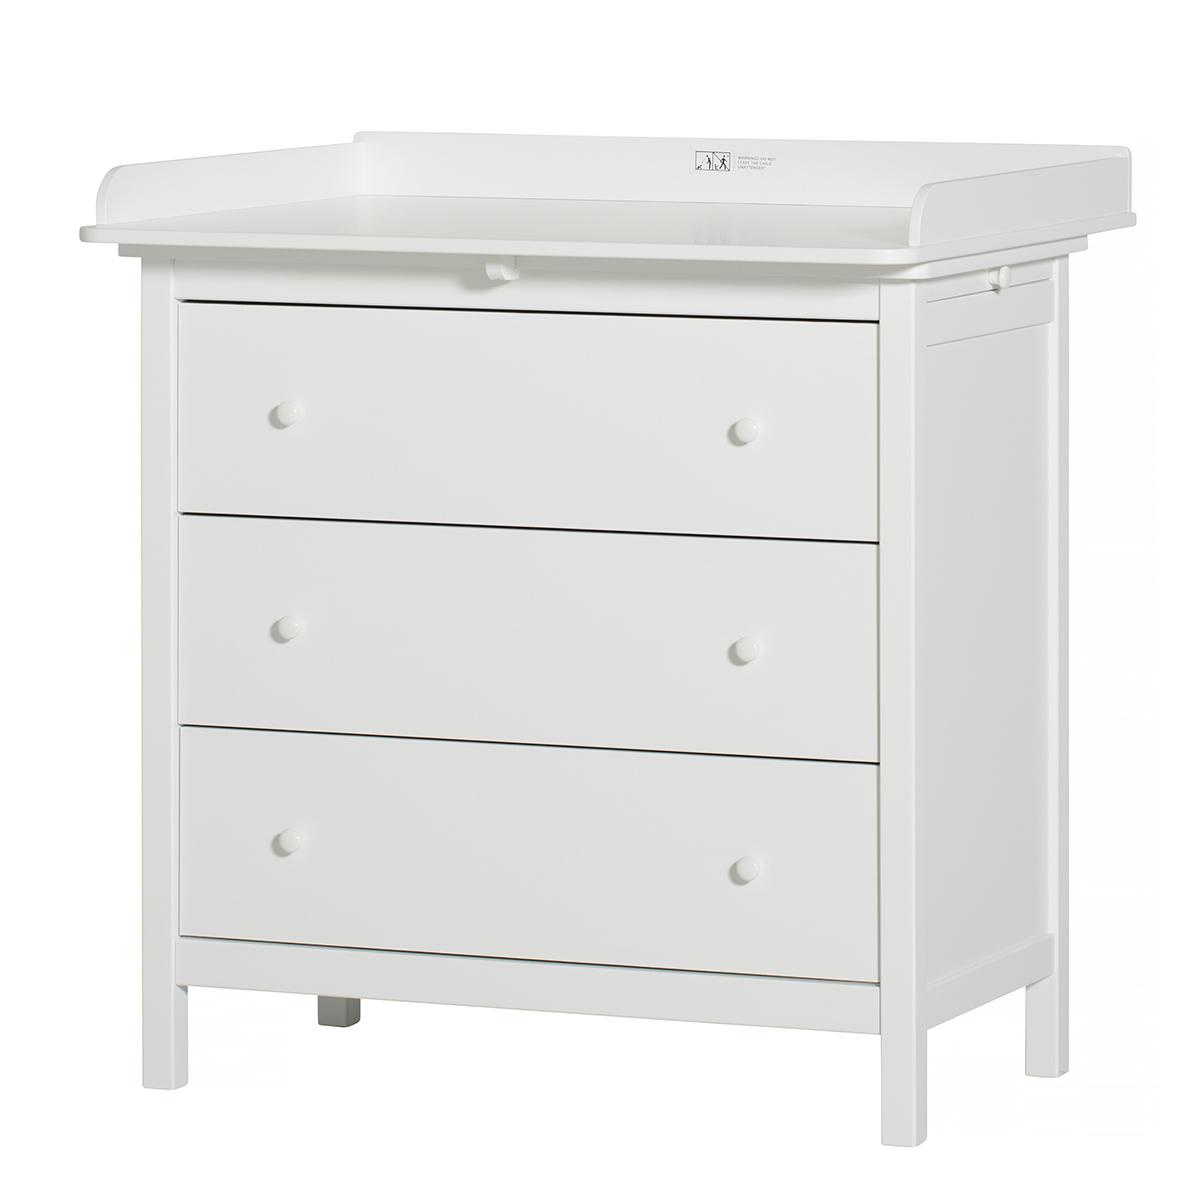 Commode à langer étagère extensible SEASIDE Oliver Furniture blanc